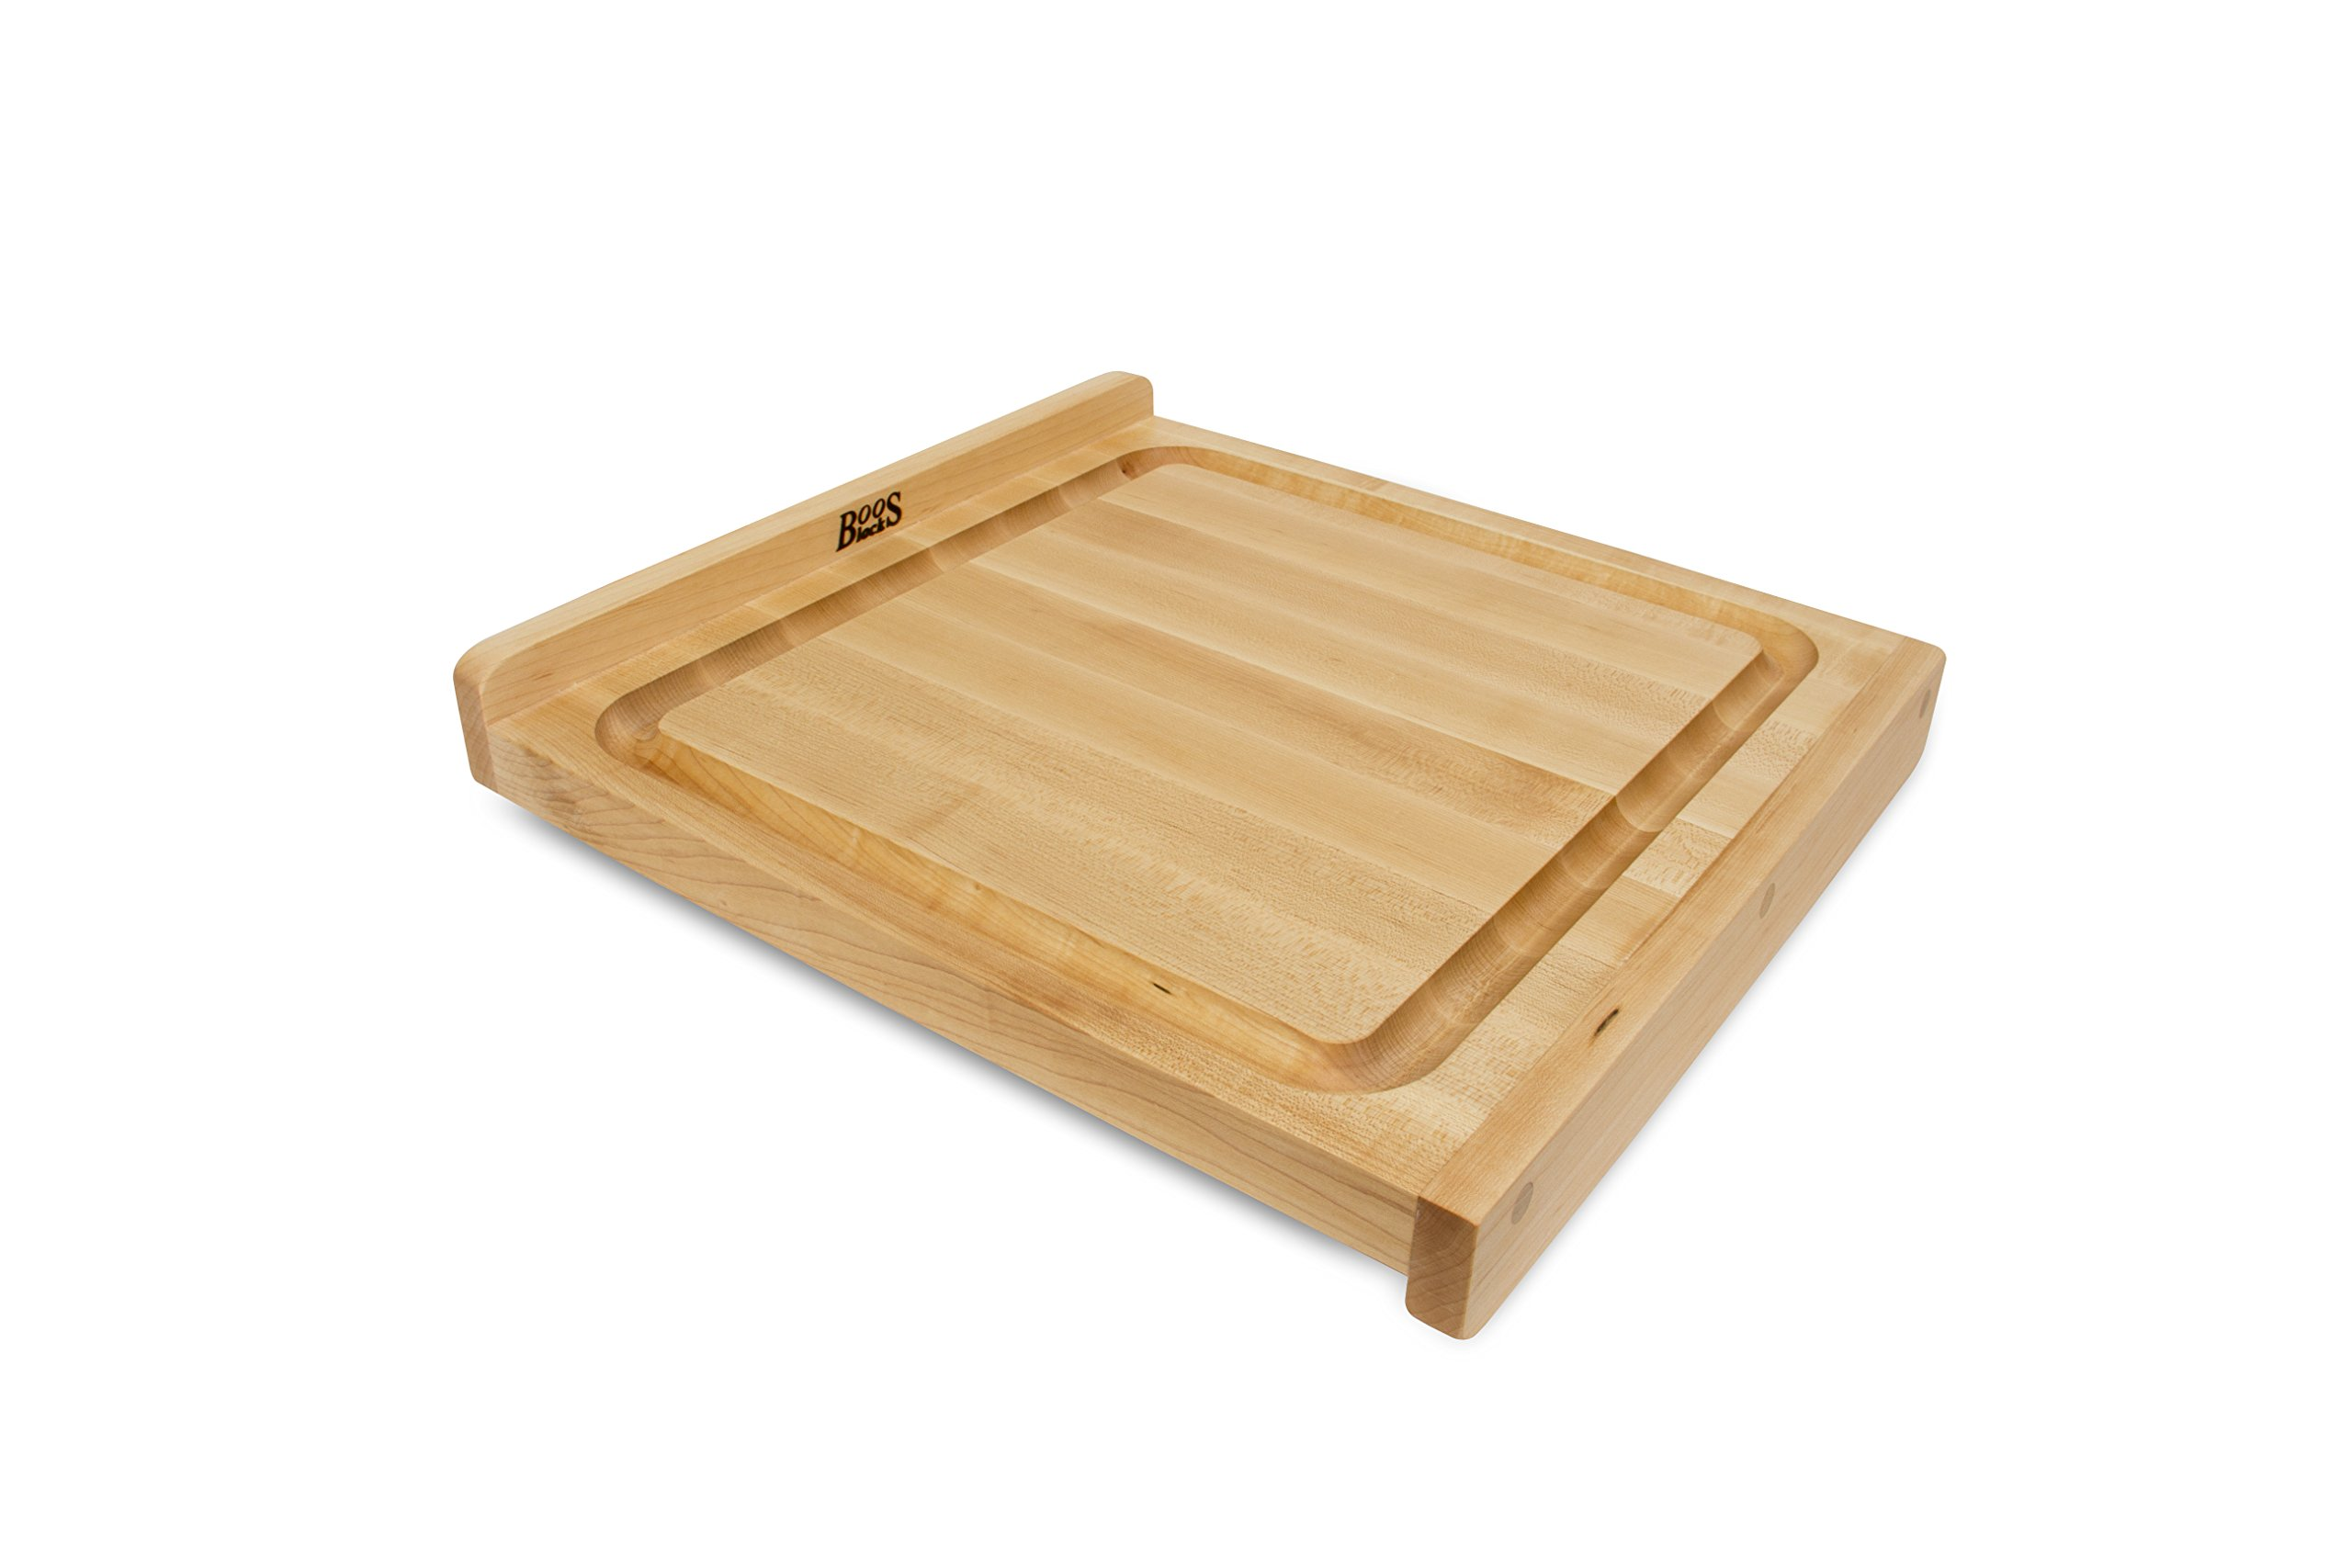 John Boos Countertop Reversible Edge Grain Cutting Board with Gravy Groove, 17.75 Inches x 17.25 Inches x 1.25 Inches